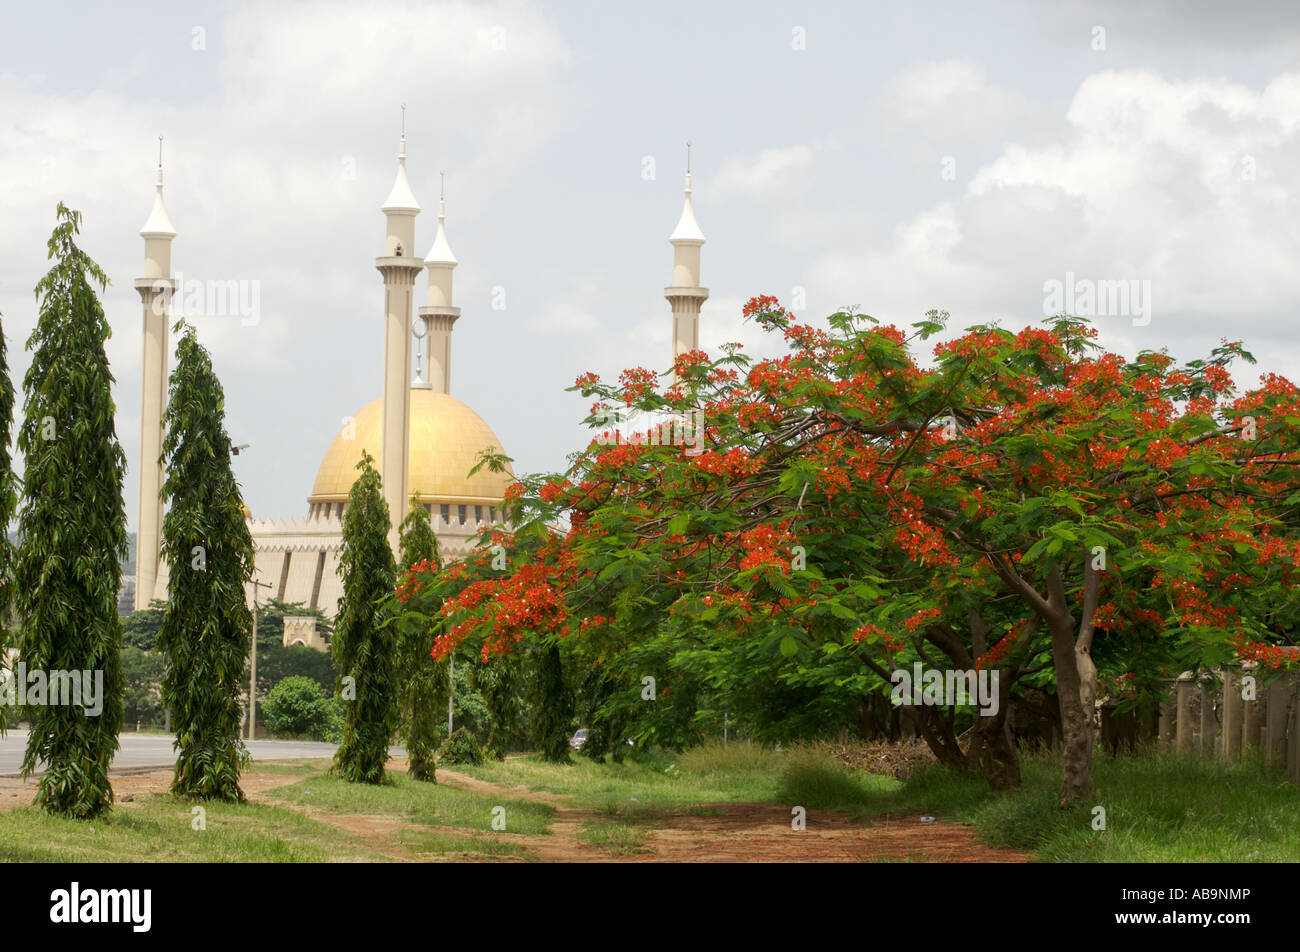 Royal Poinciana flamboyant tree with Nigerian National mosque - Stock Image